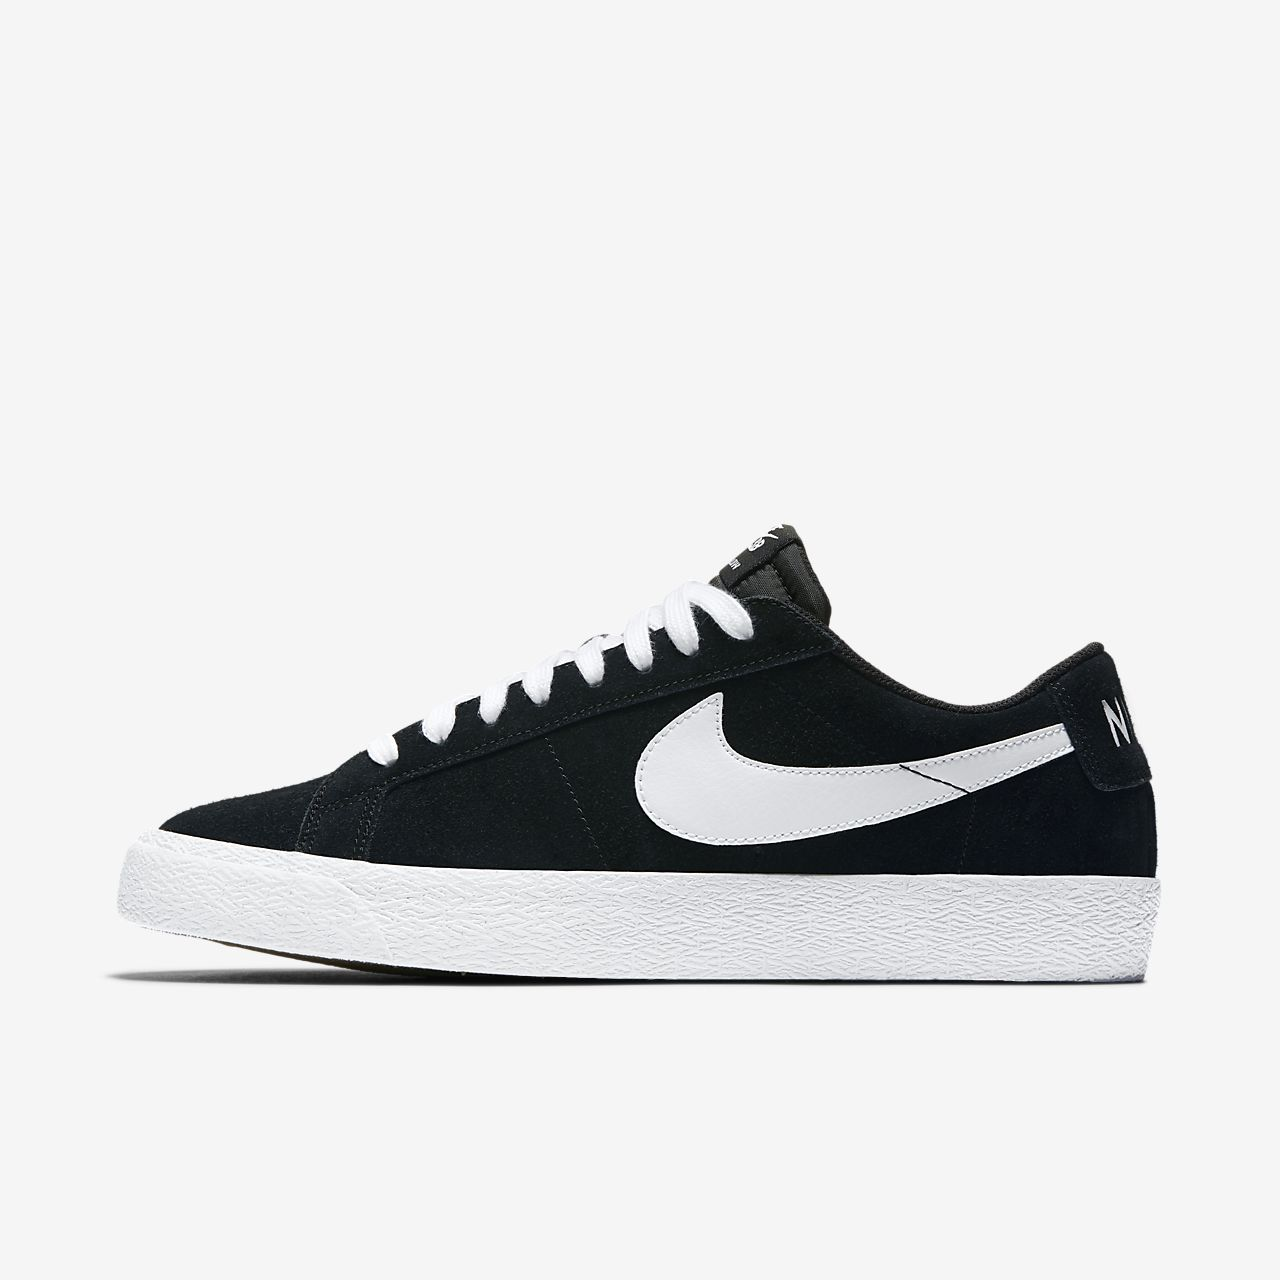 1381bb53b45a Nike SB Blazer Zoom Low Men s Skateboarding Shoe. Nike.com CA